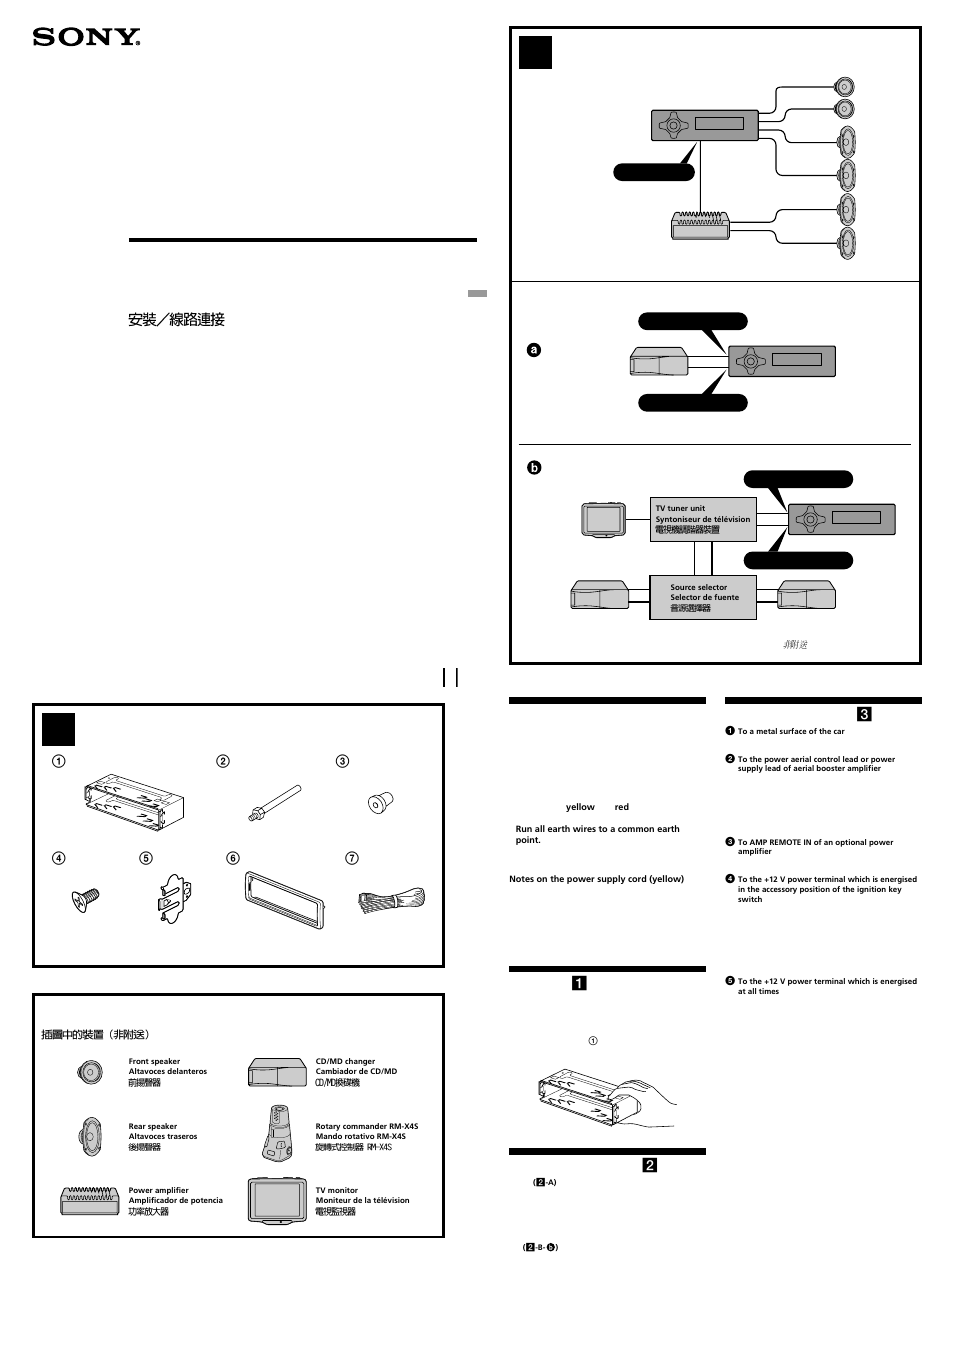 Wiring Diagram For Sony Radio Cdx